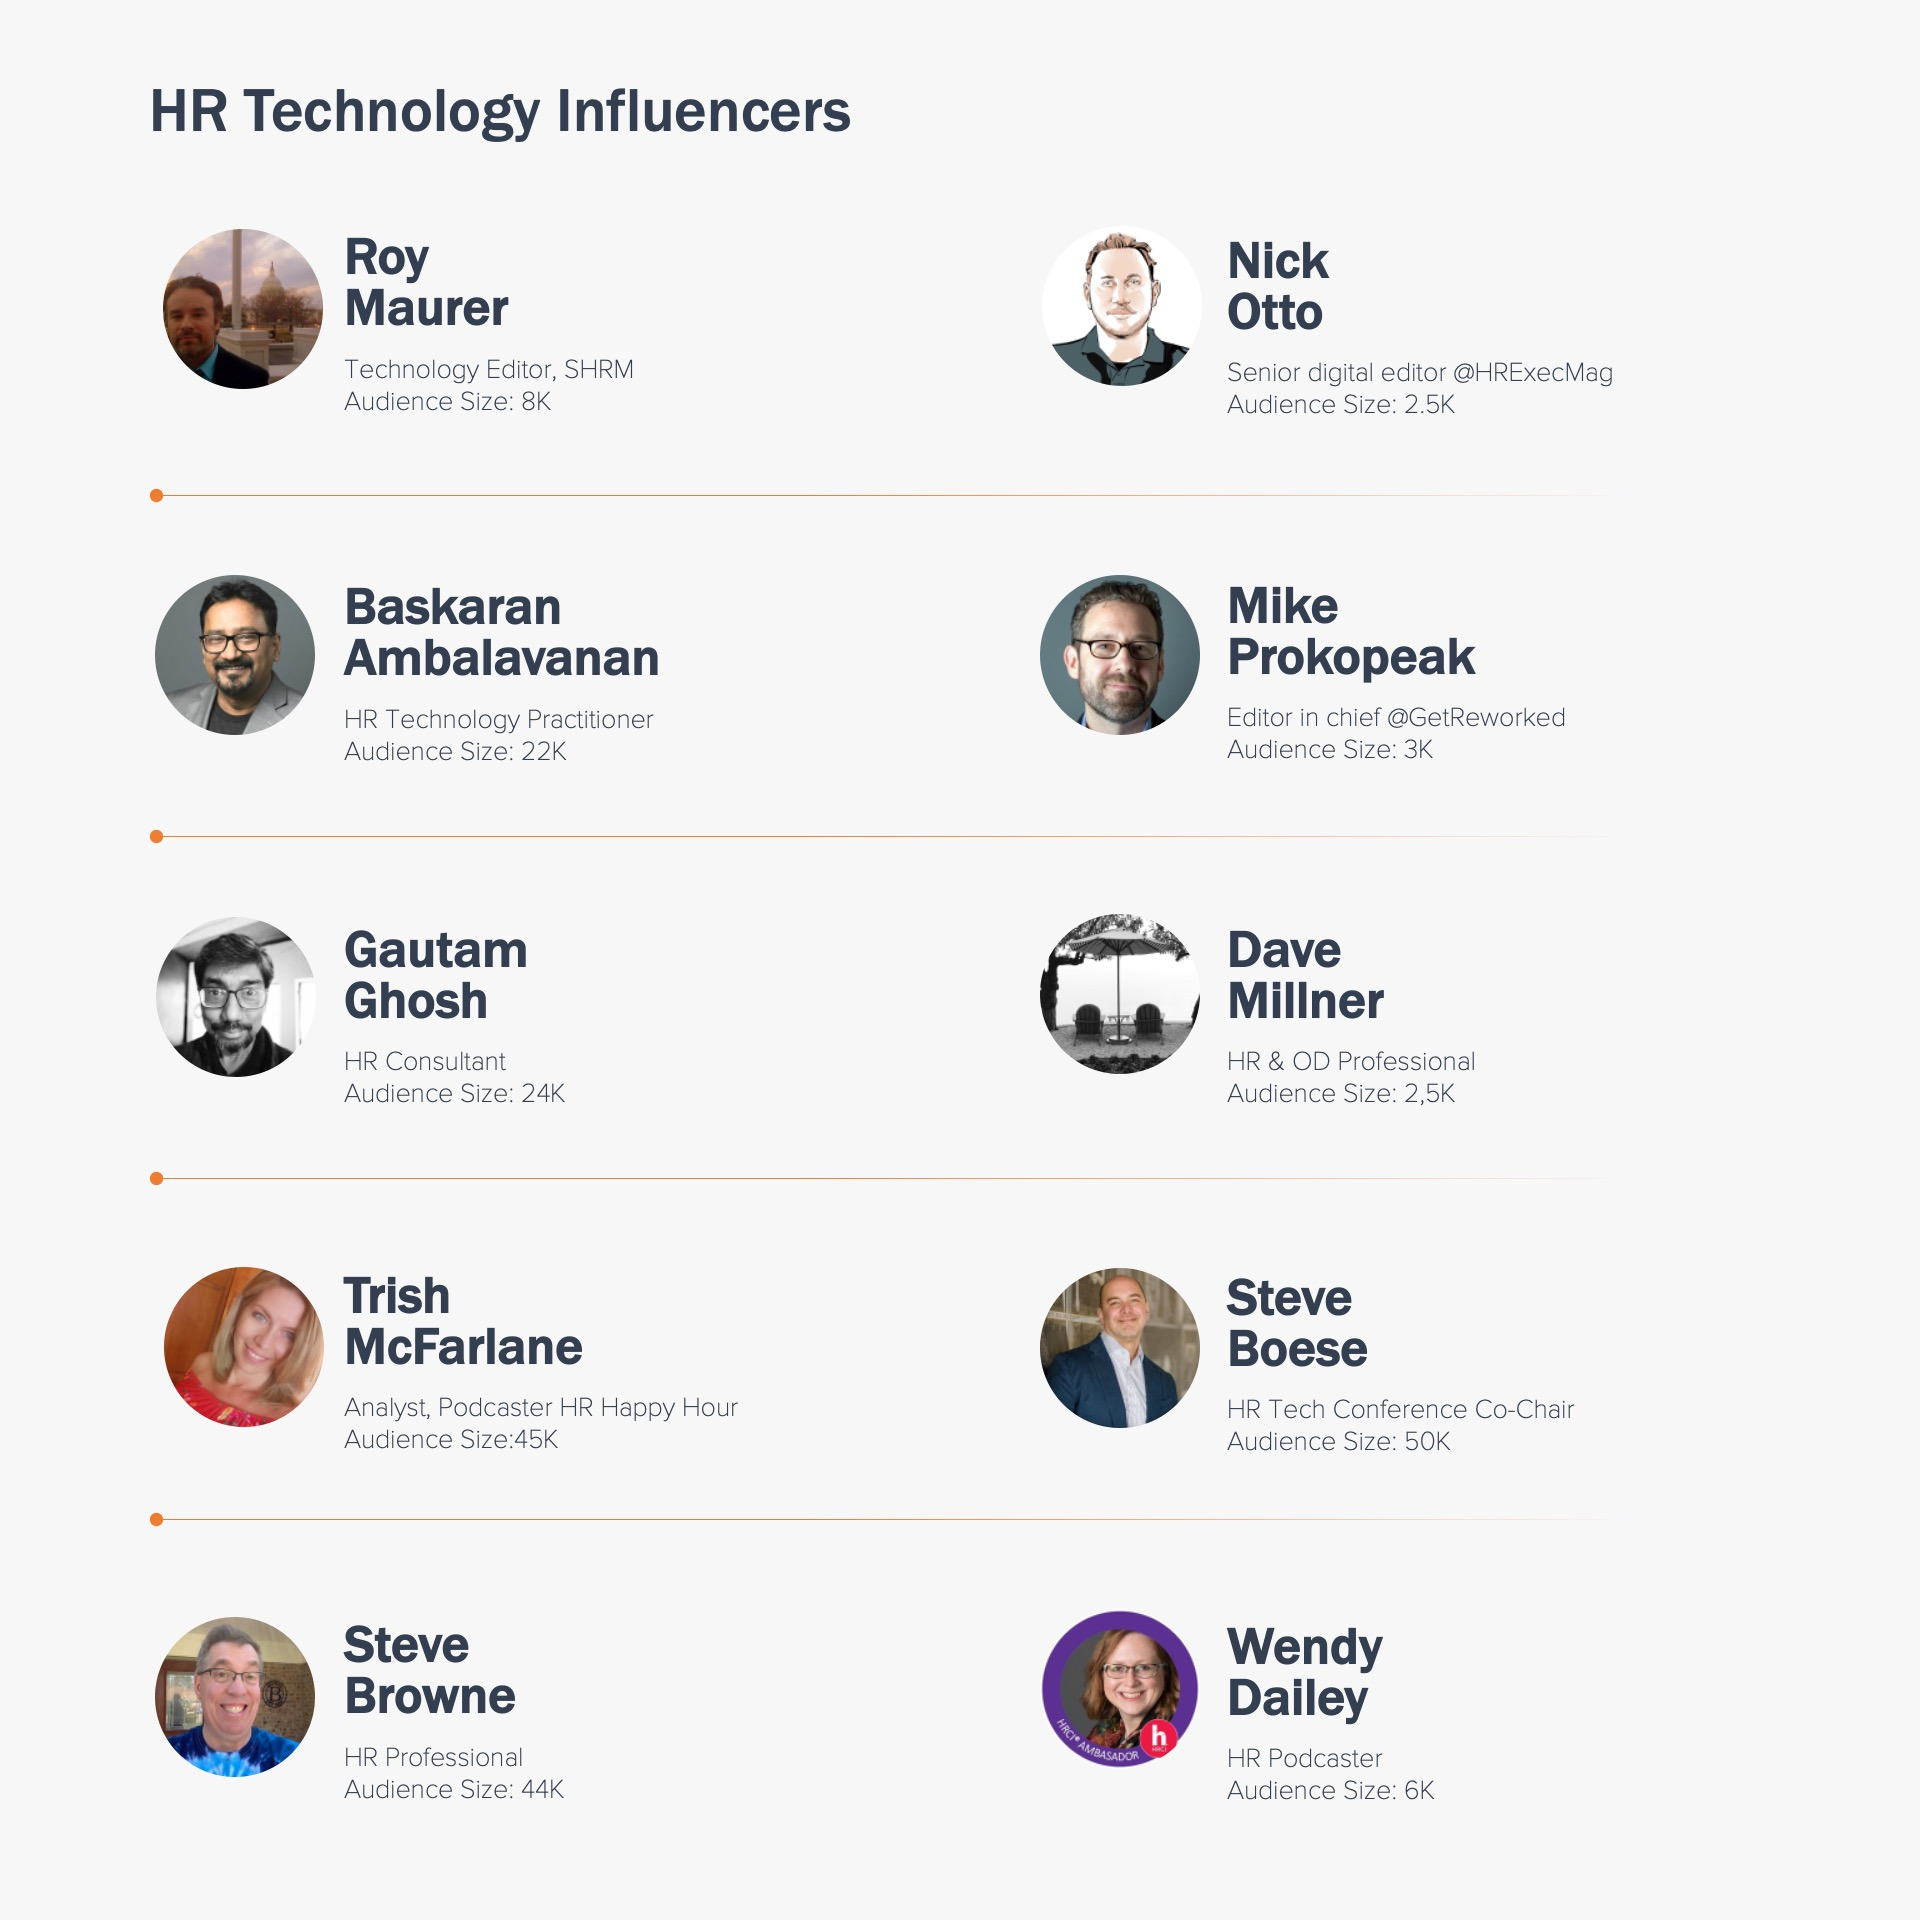 HR Technology Influencers